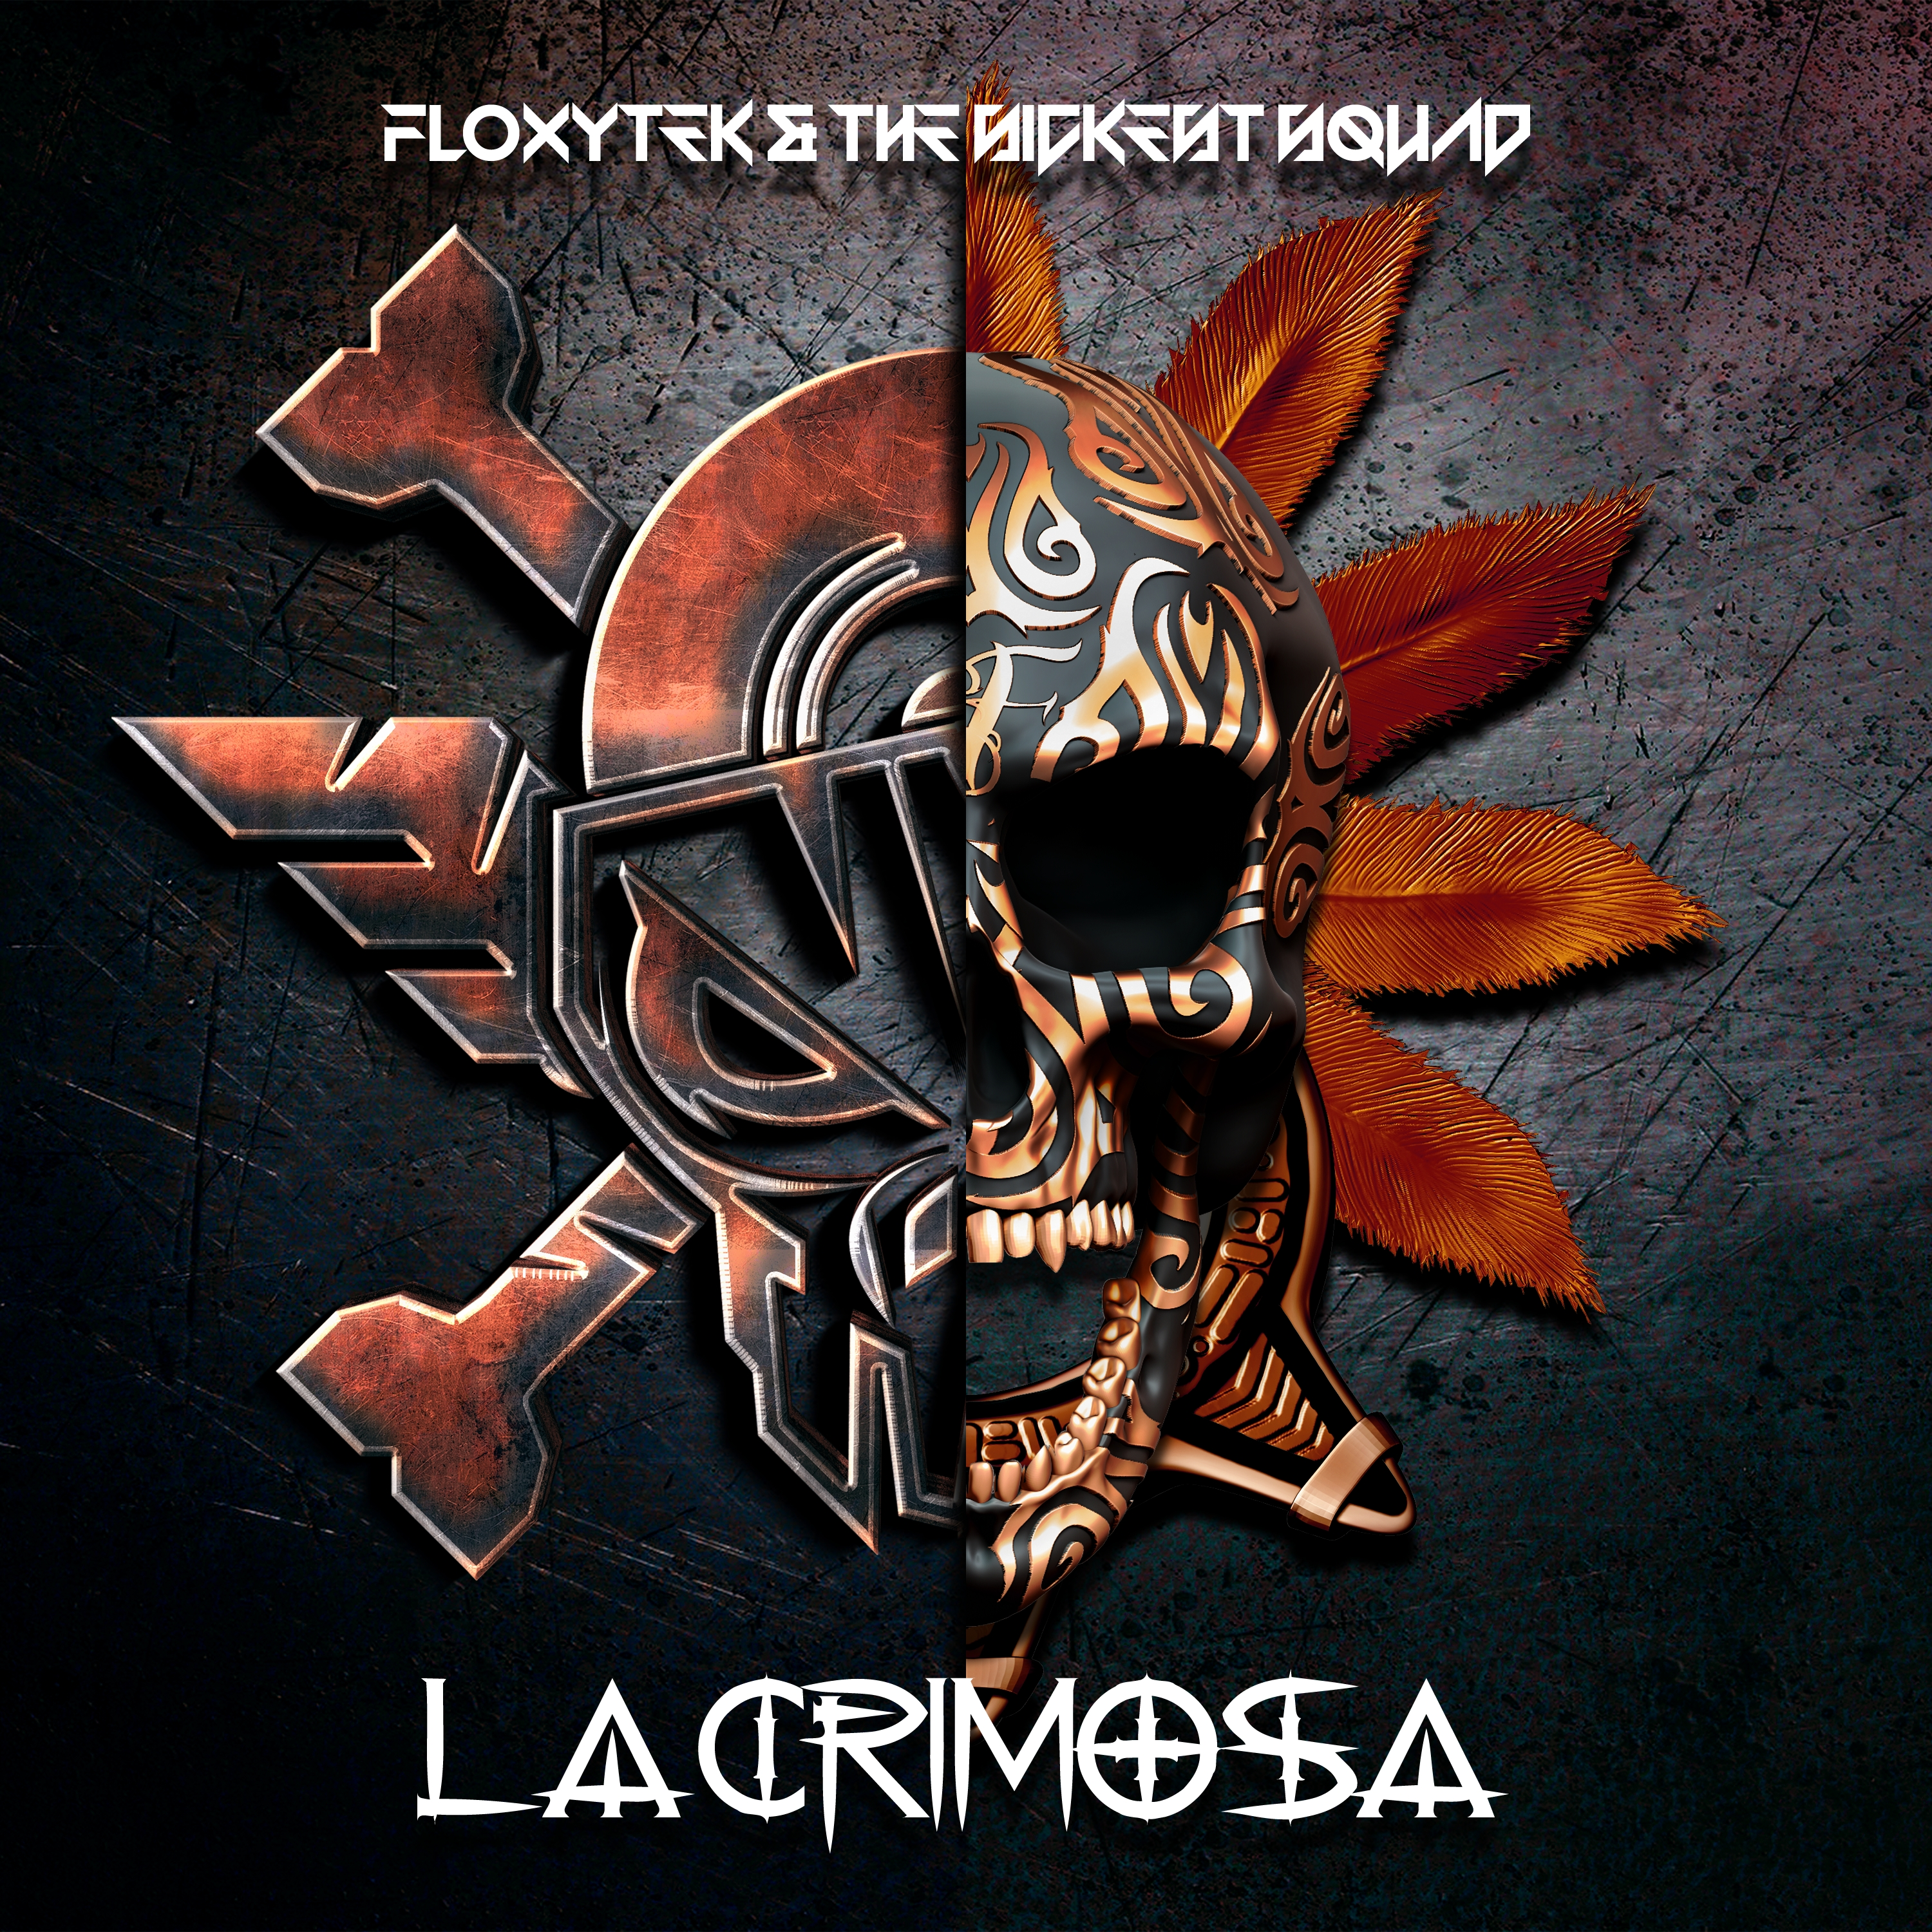 Floxytek & The Sickest Squad - Lacrimosa